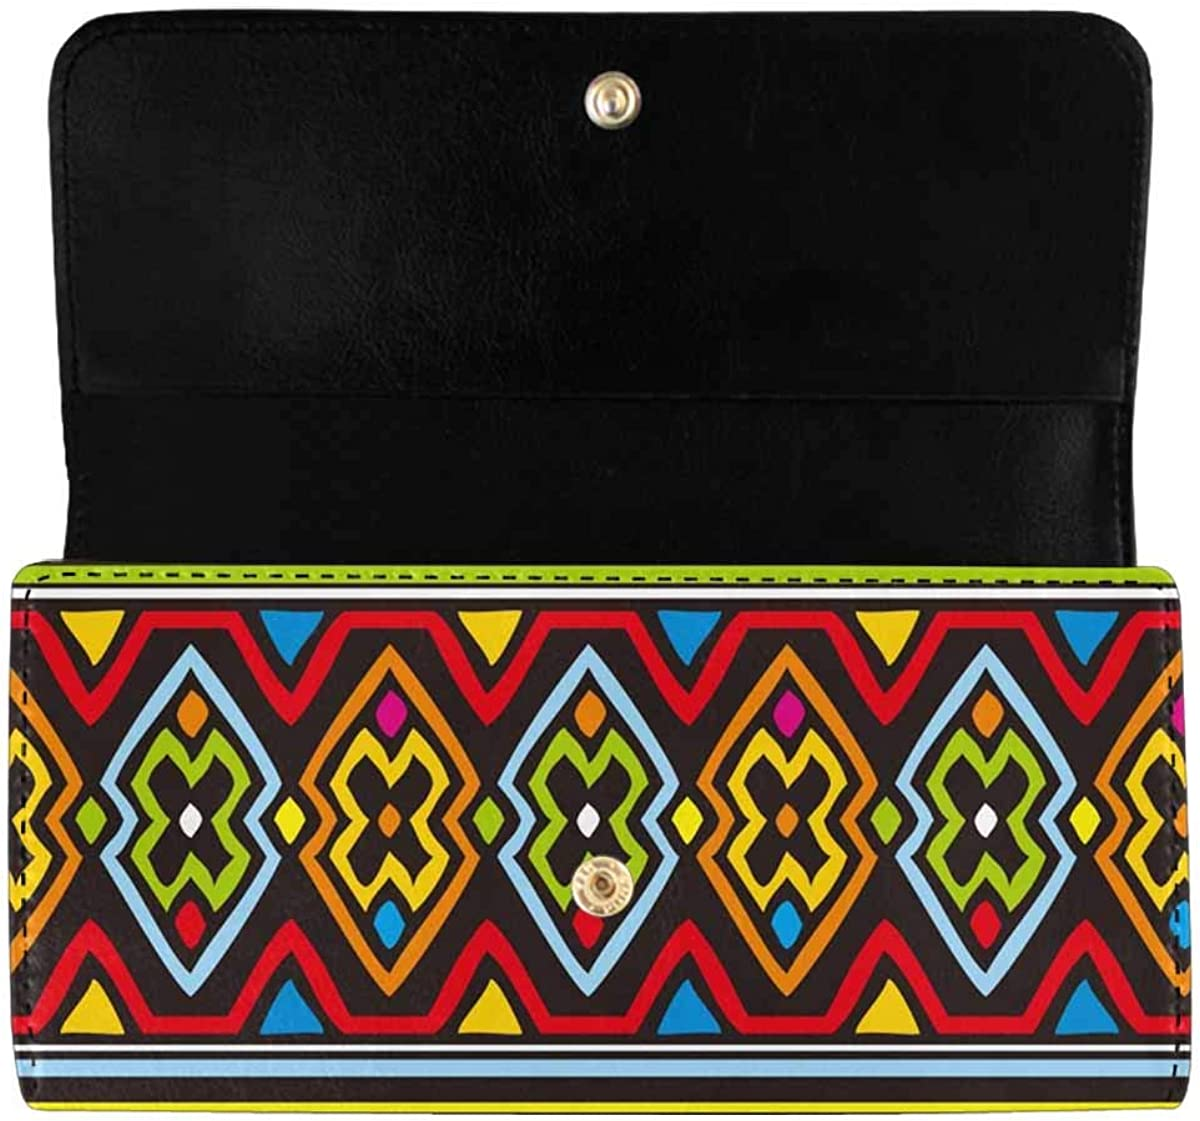 InterestPrint Women's SEAL limited product Long Clutch Wallets Challenge the lowest price Art Prin Retro African